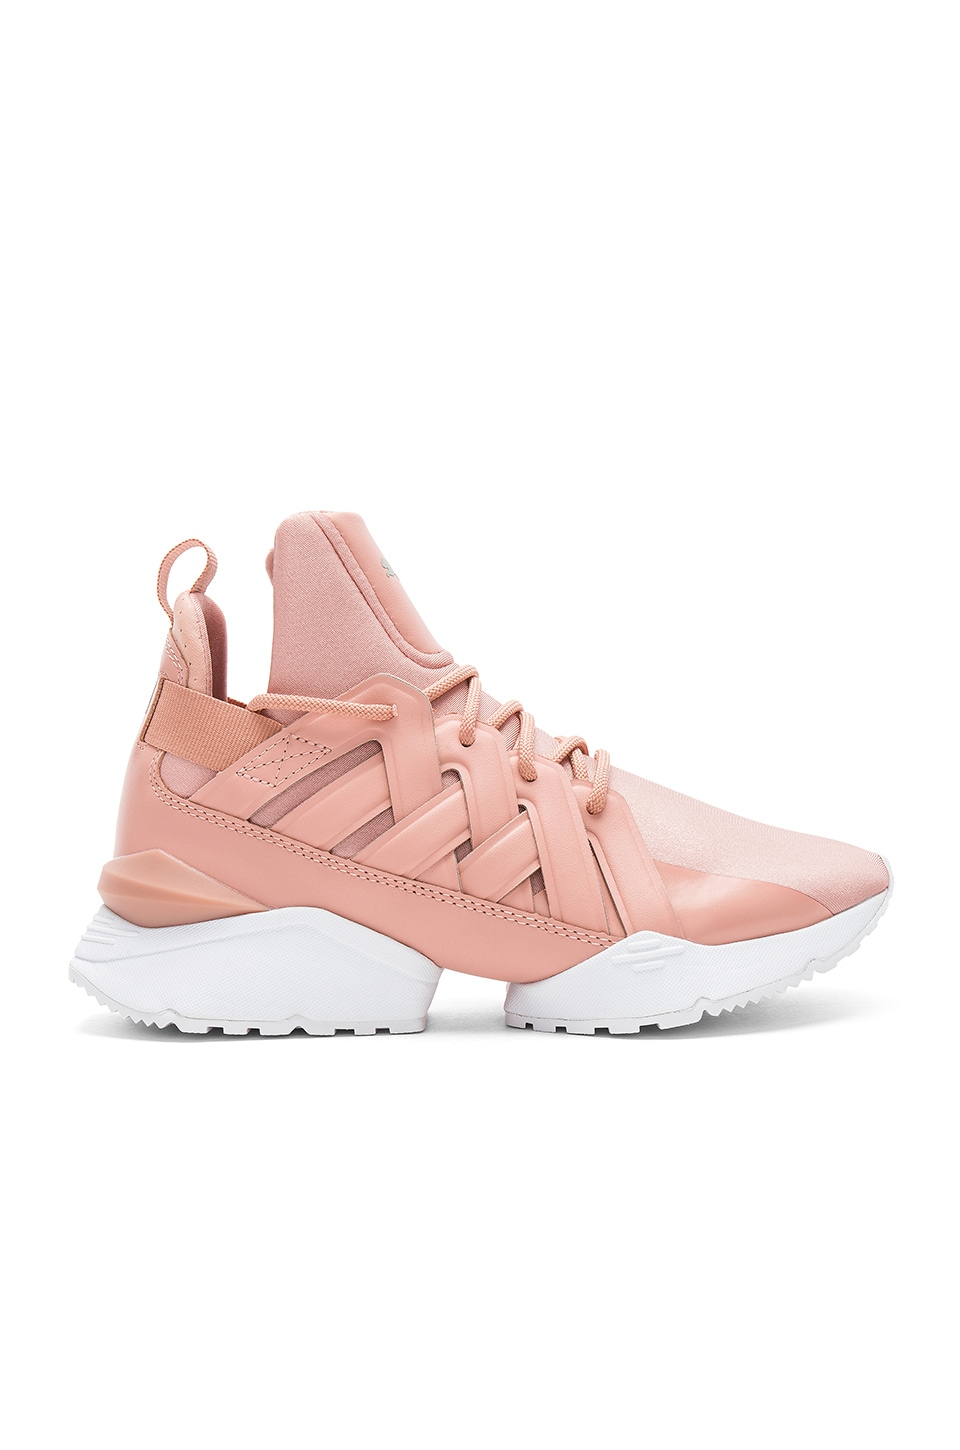 Puma Muse Echo Satin Sneaker in Peach Beige & Puma White